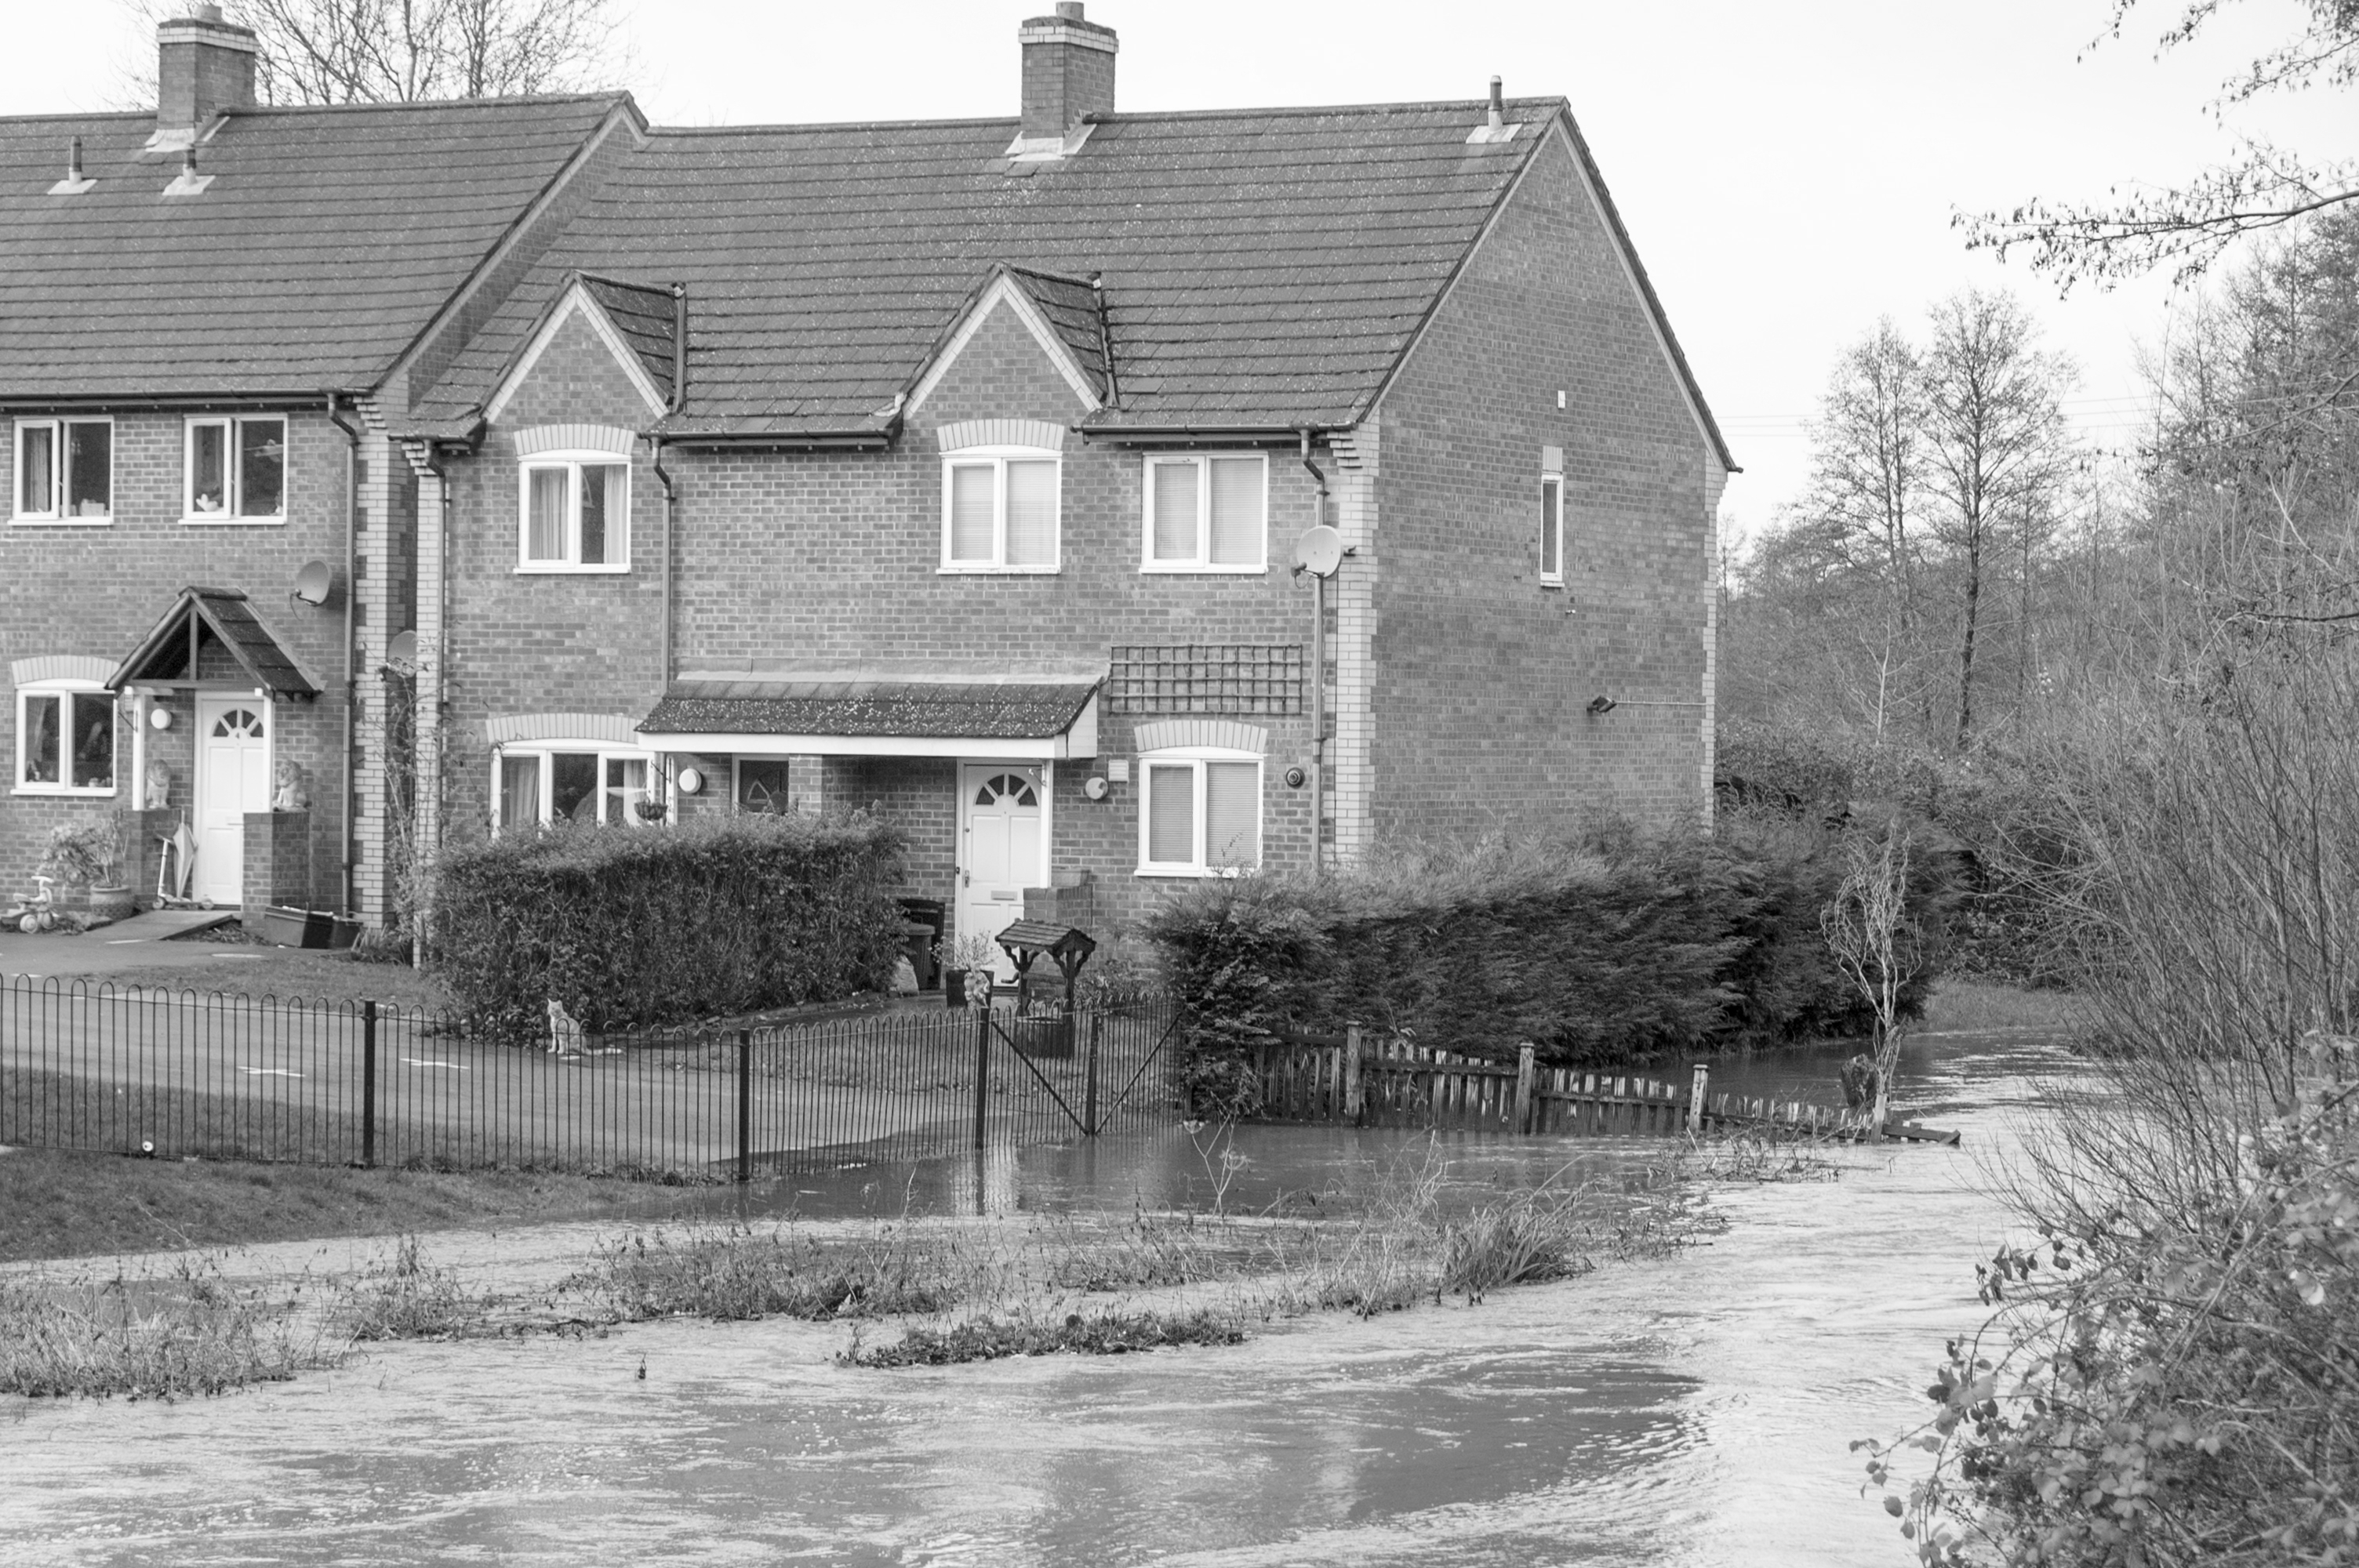 Rising flood waters threaten homes in Gloucestershire in the UK